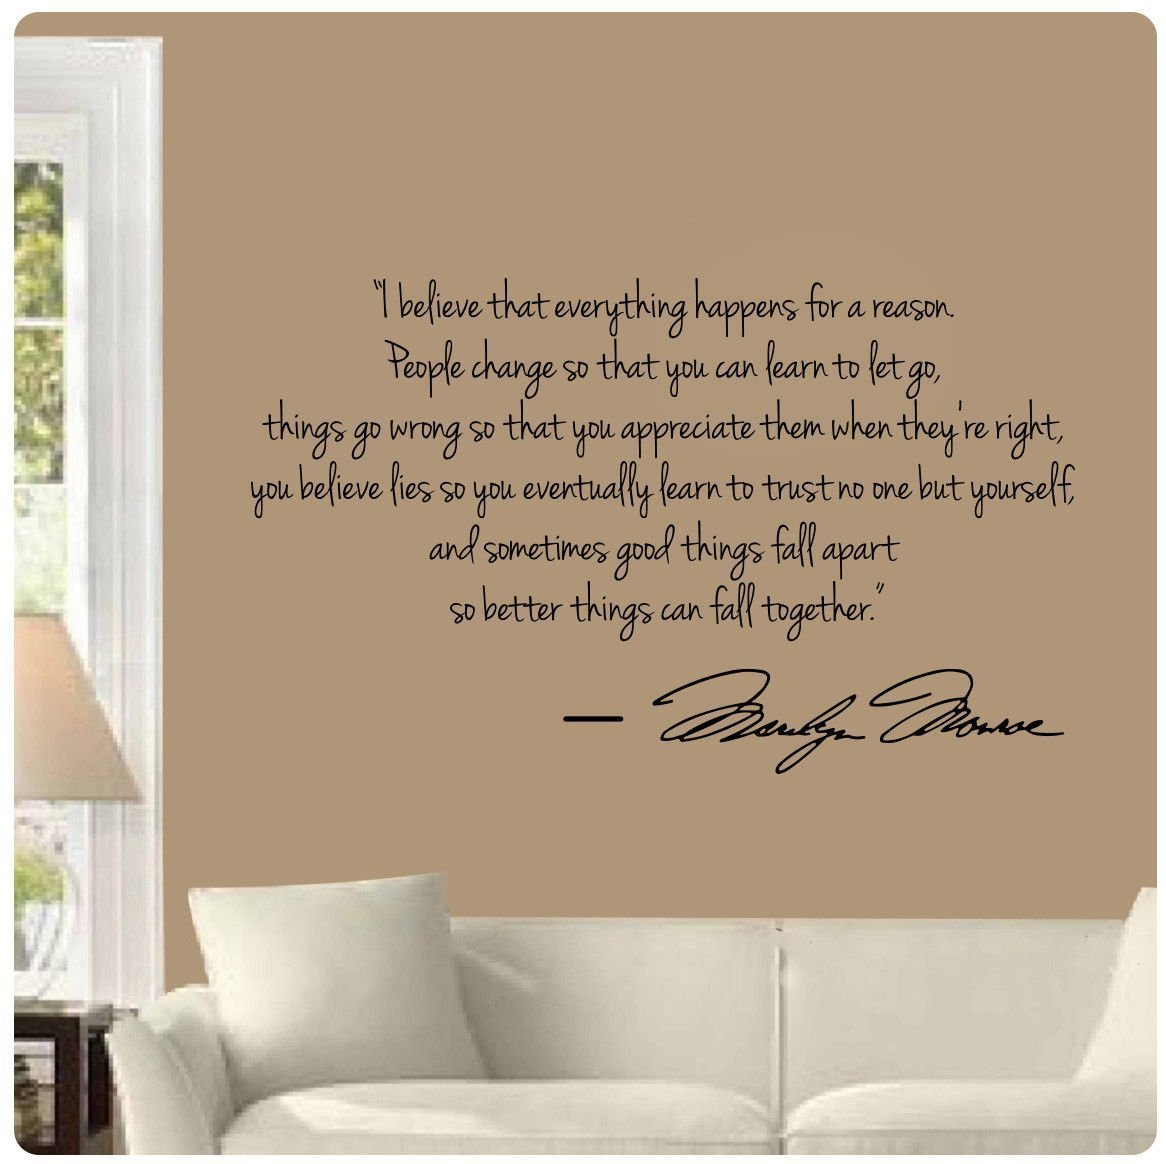 Great Marilyn Monroe Wall Decal Decor Quote I Believe Things Happen...Large Nice    Other Products   Amazon.com Amazing Ideas